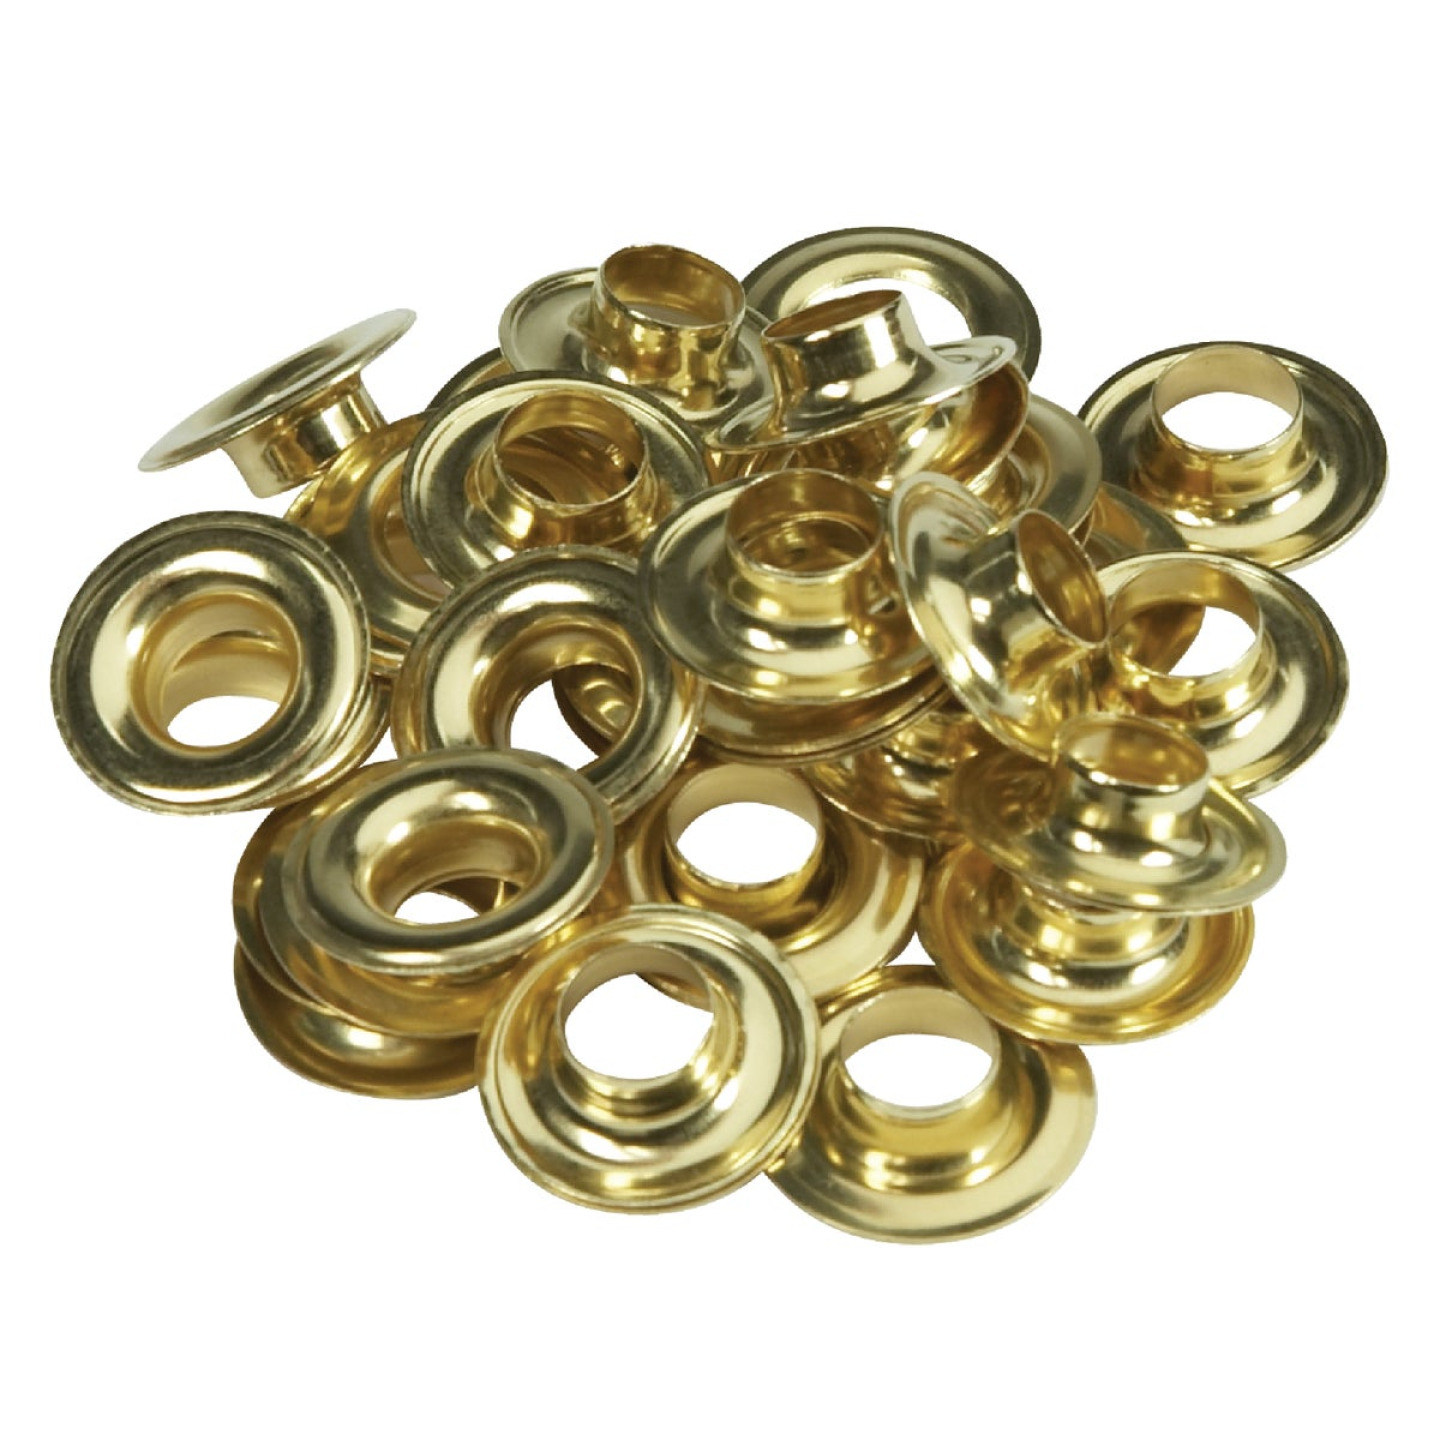 Lord & Hodge 3/8 In. Brass Grommet Refills (24 Ct.) Image 1